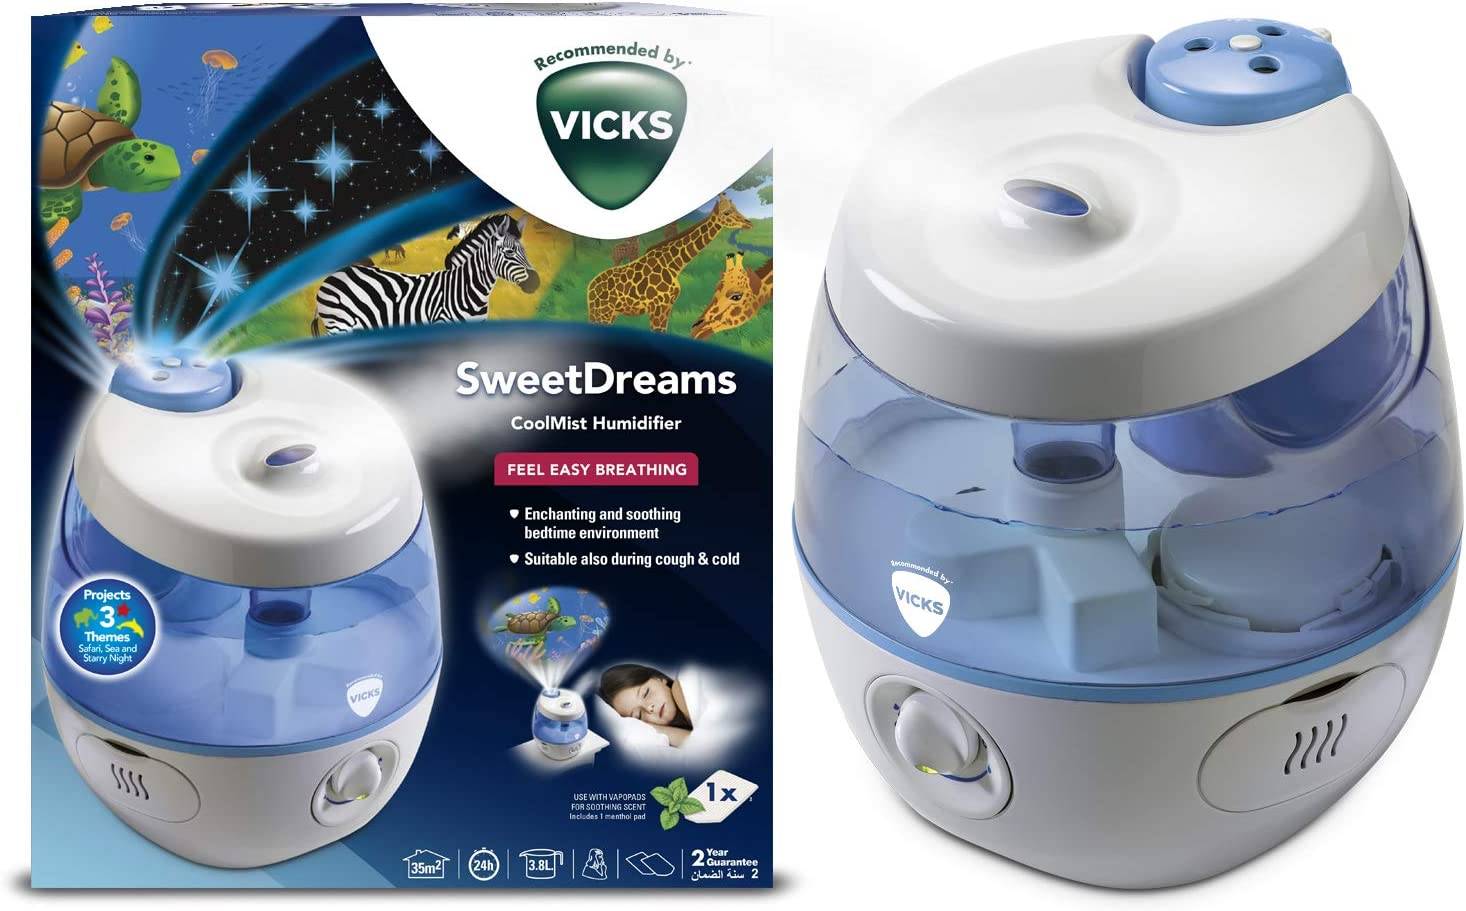 Vicks SweetDreams Cool Mist Humidifier | Compare | Union